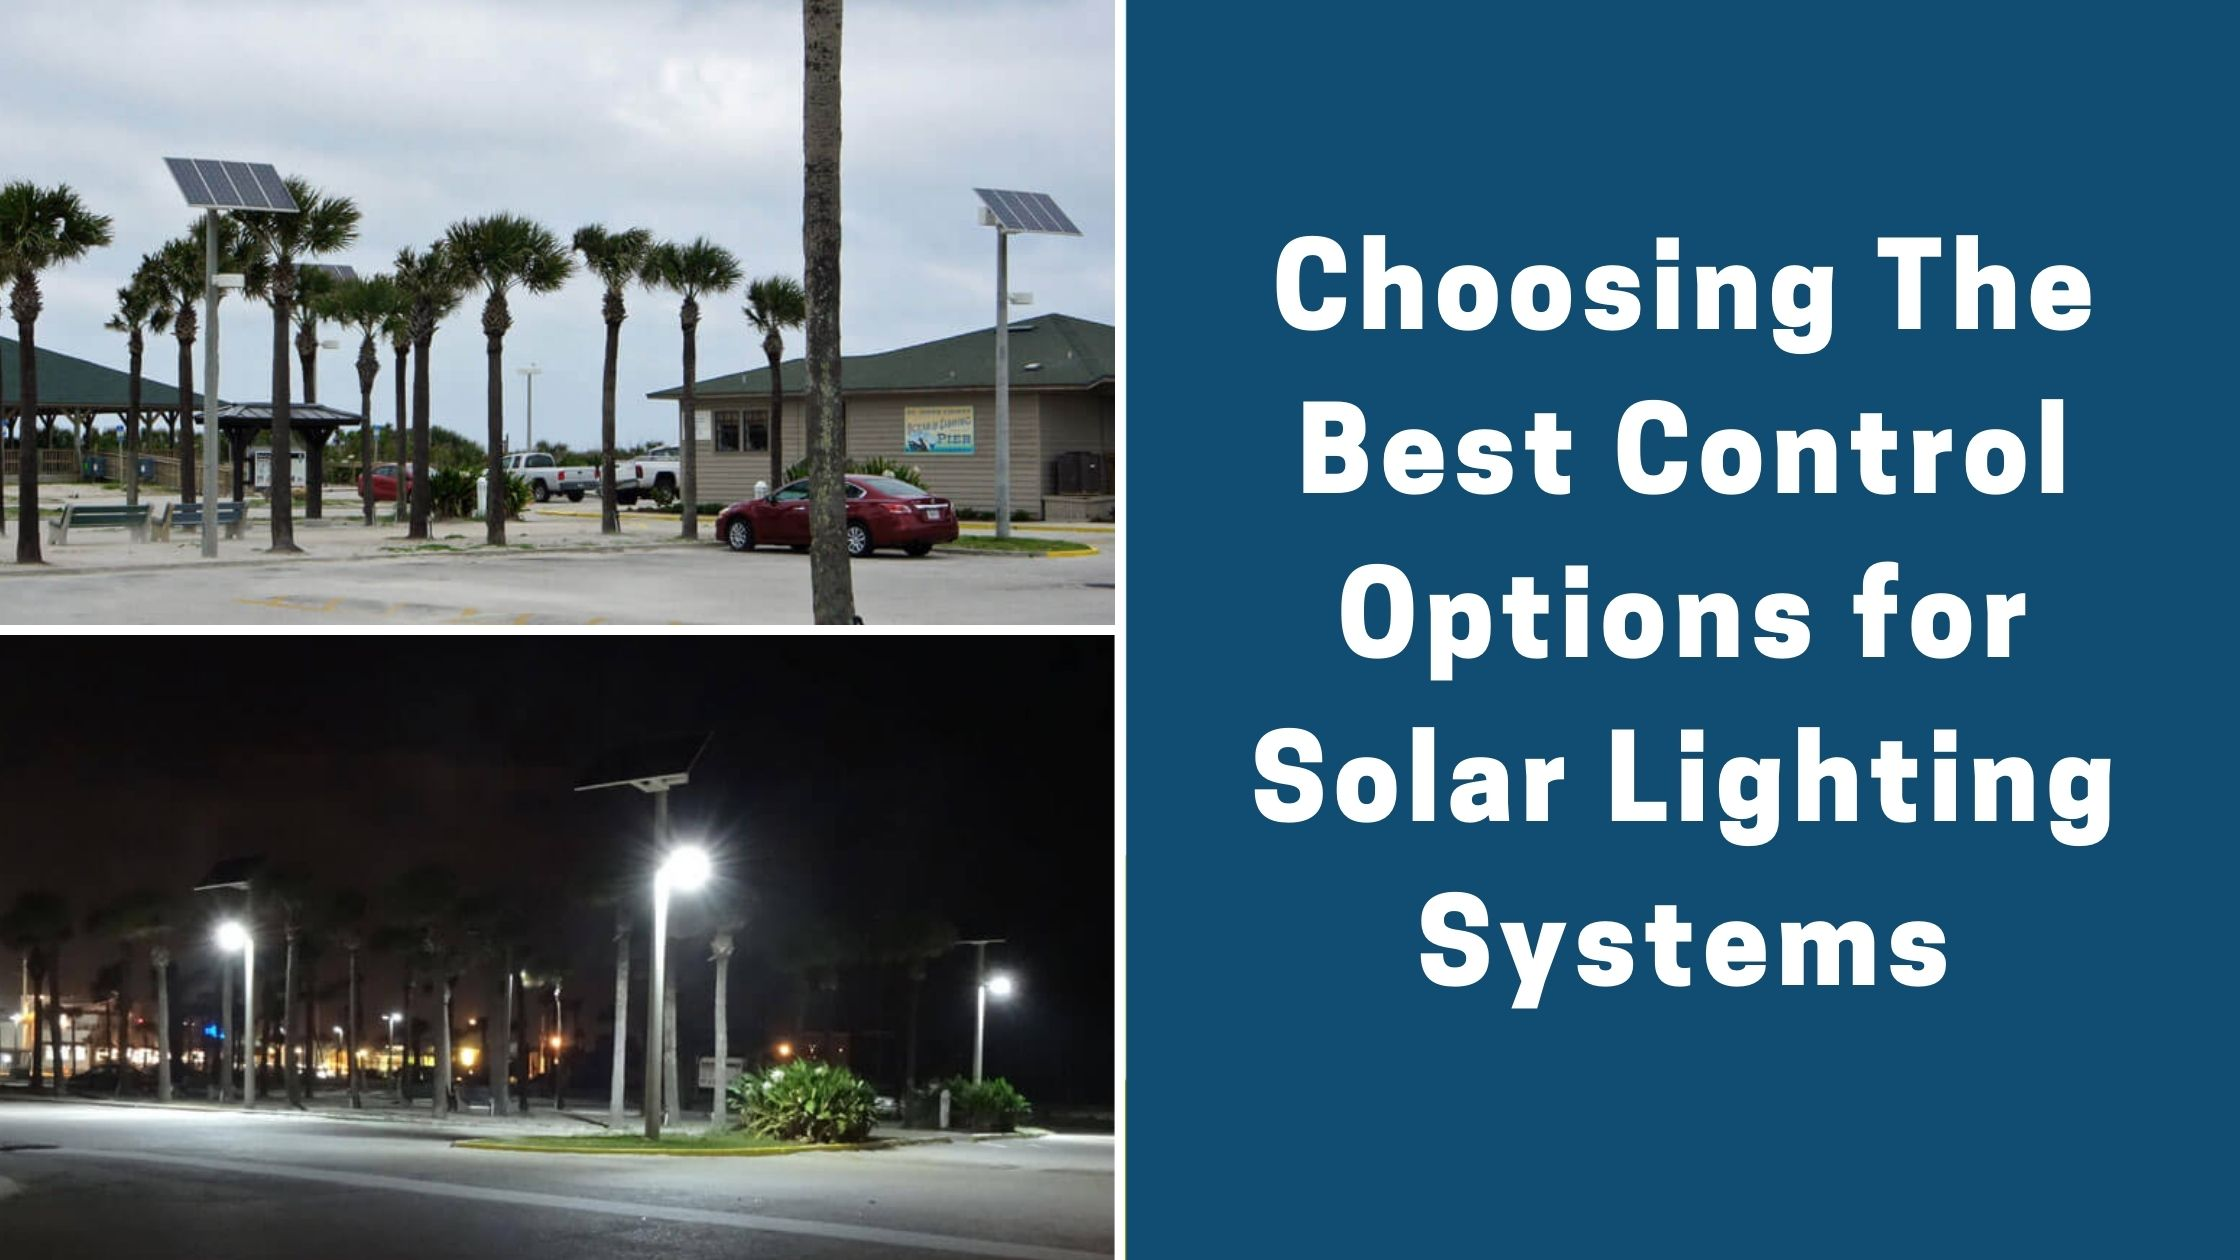 Choosing The Best Control Options for Solar Lighting Systems